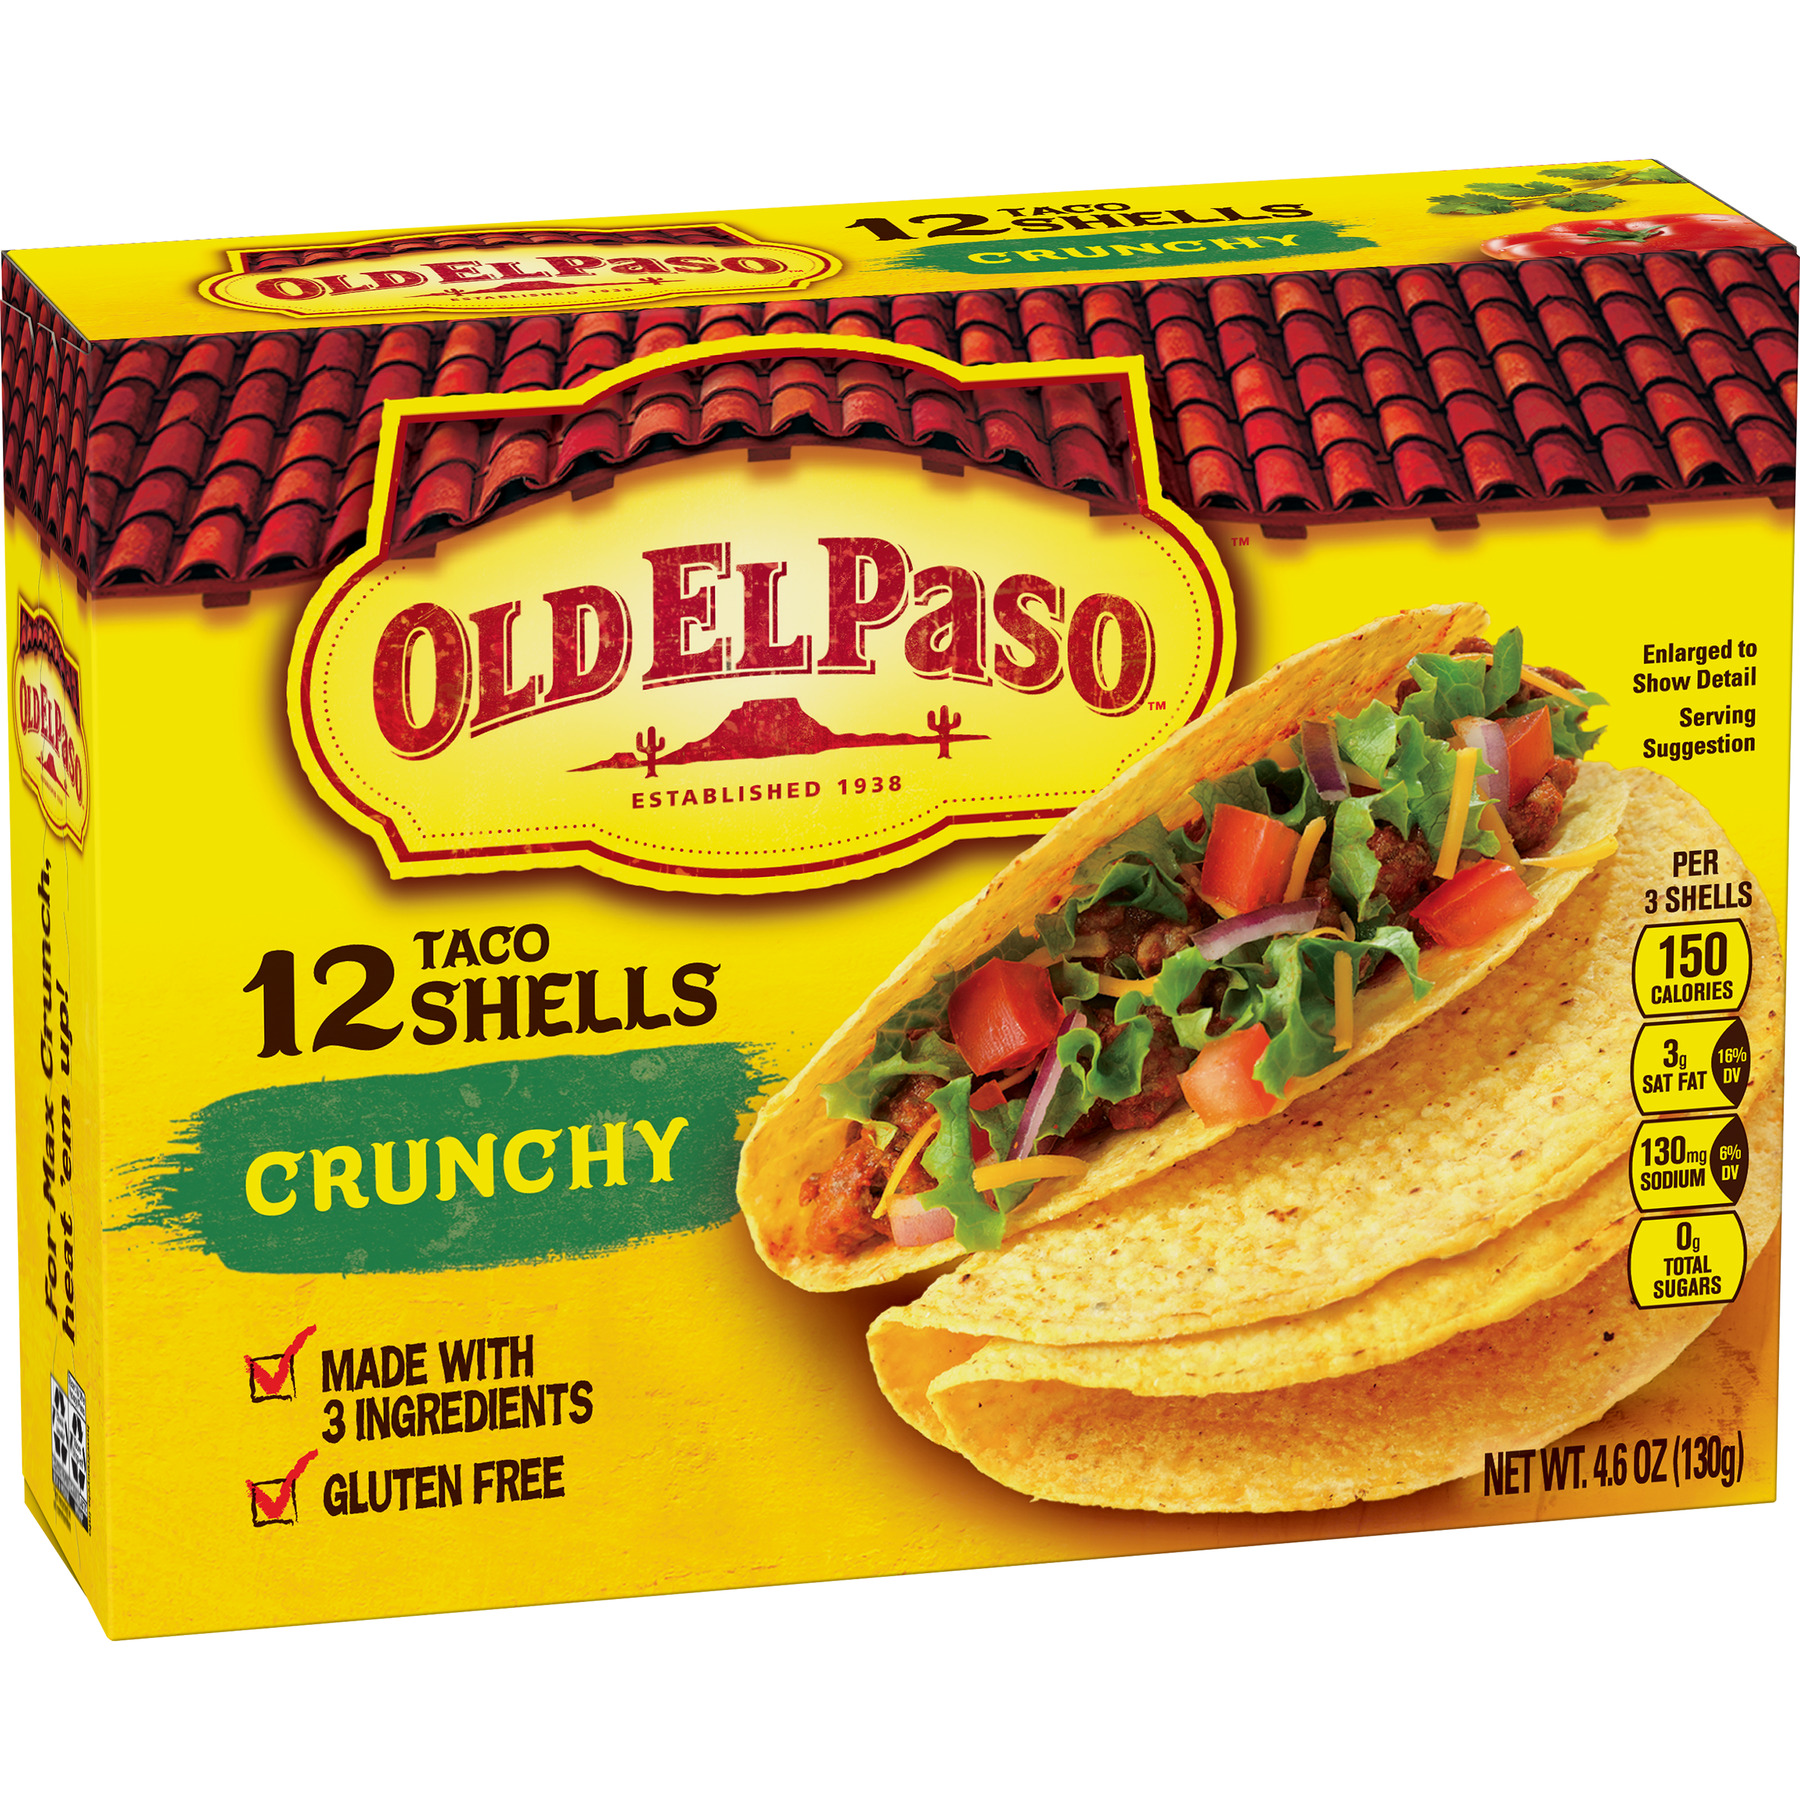 Old El Paso Crunchy Shells, 4.6 oz, 12 Count Box